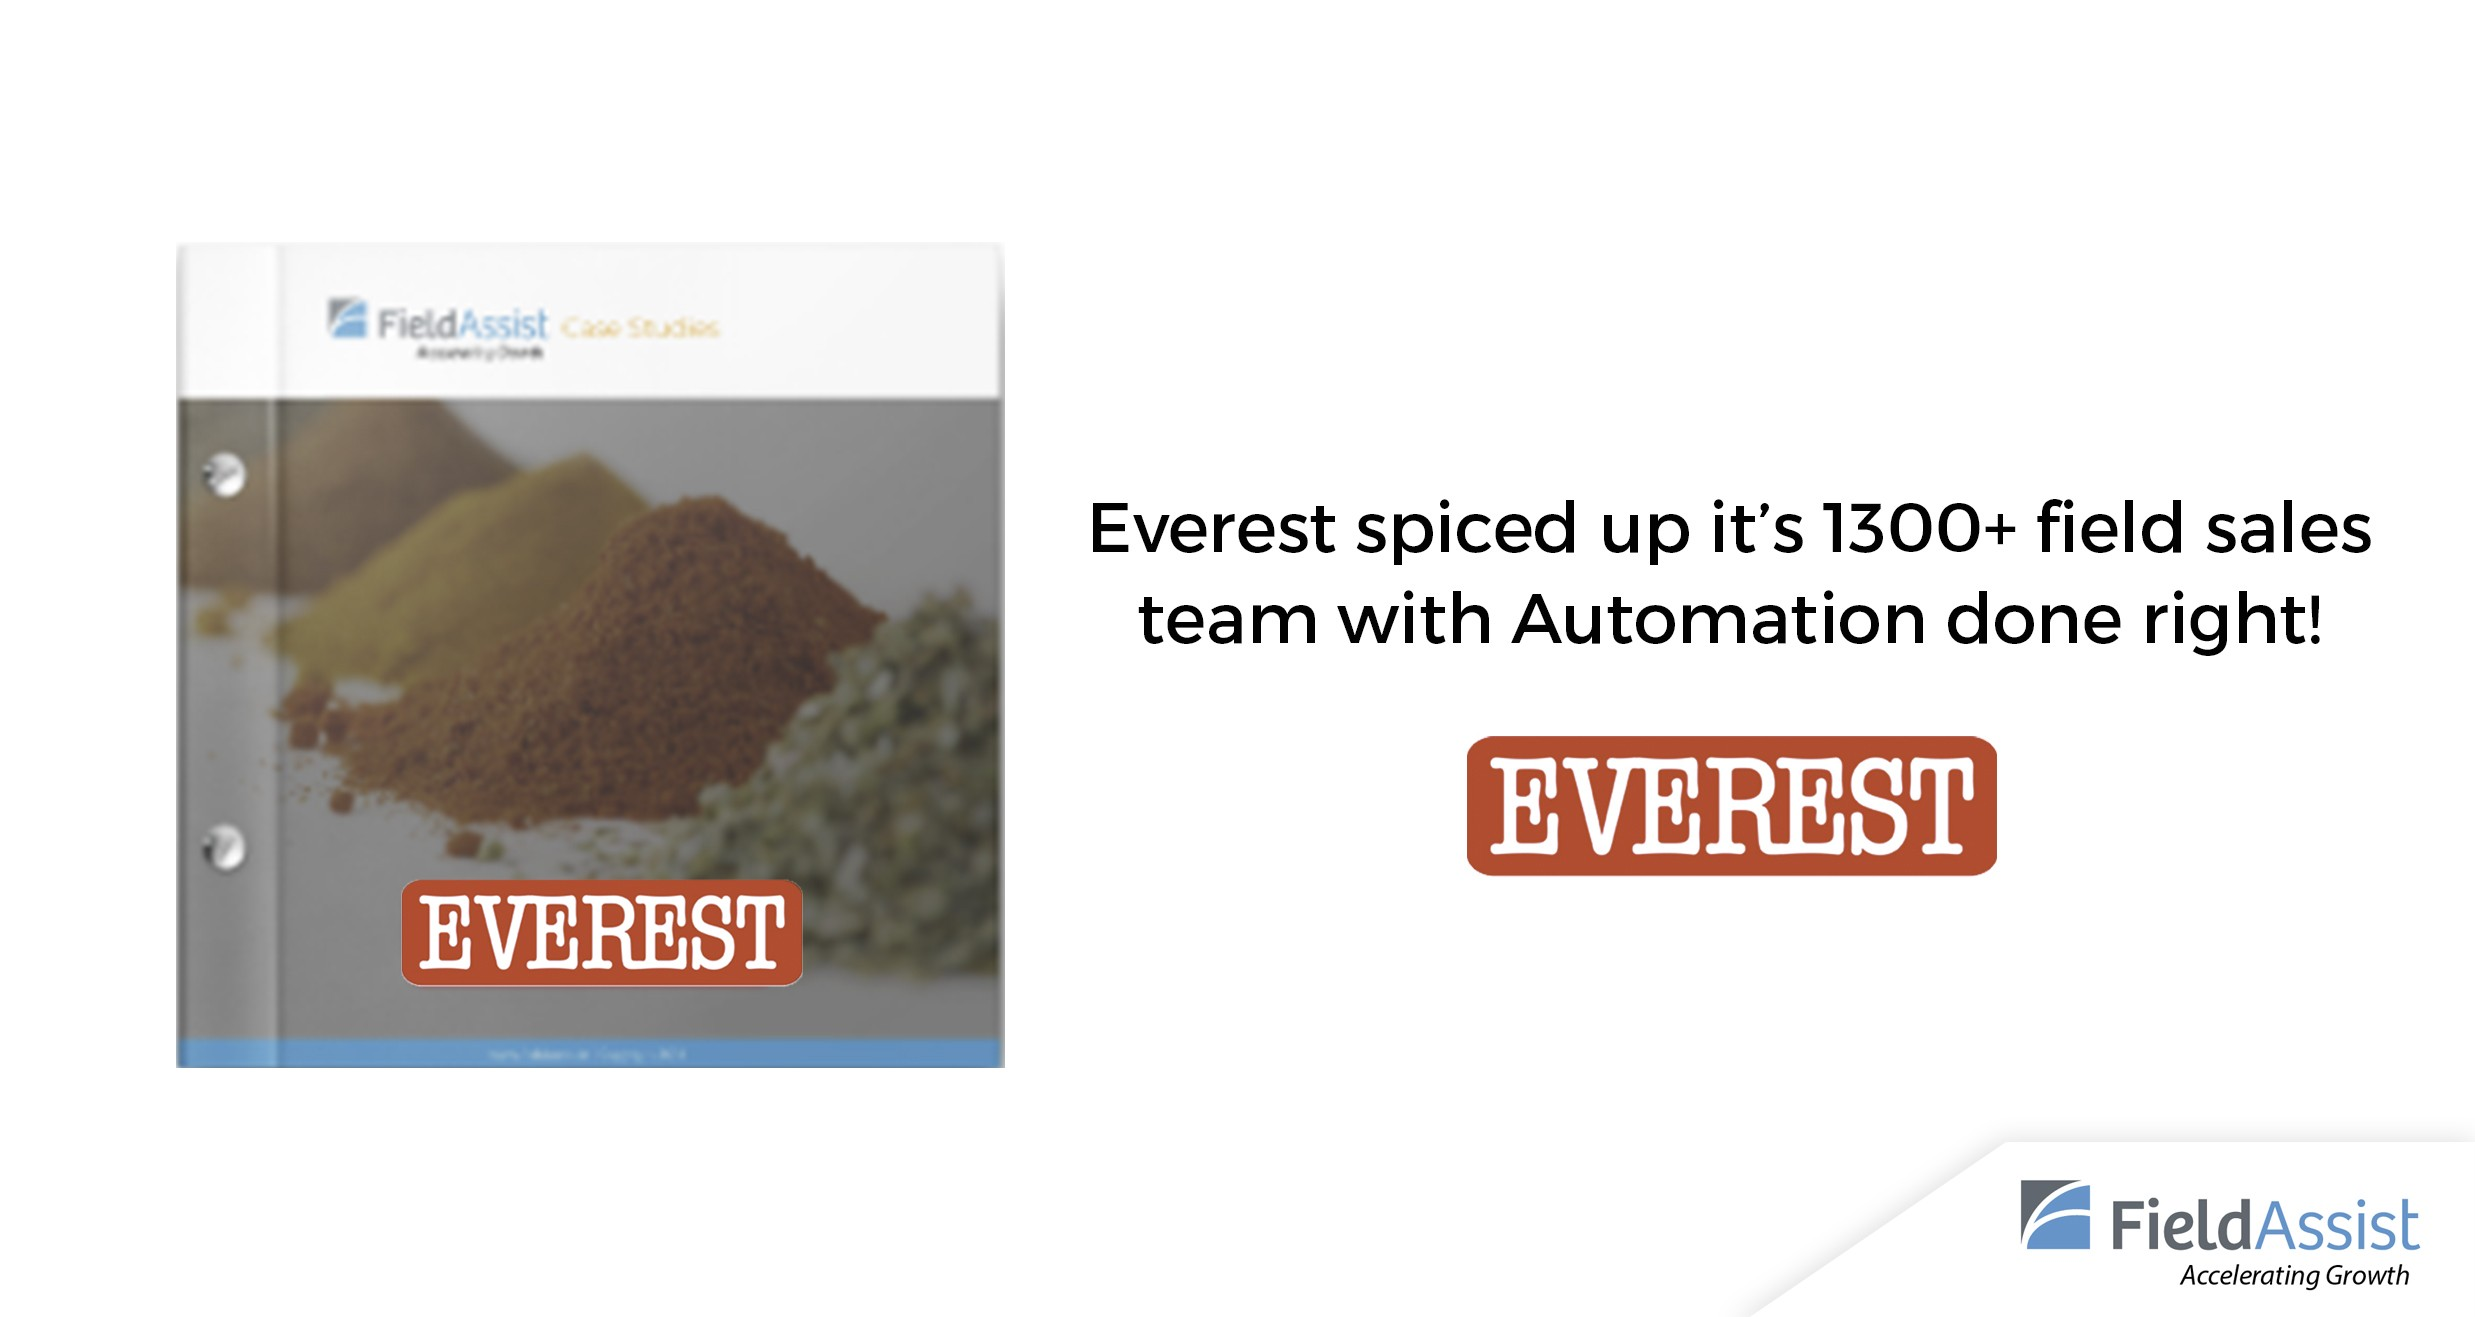 Everest - FMCG Sales Case Study